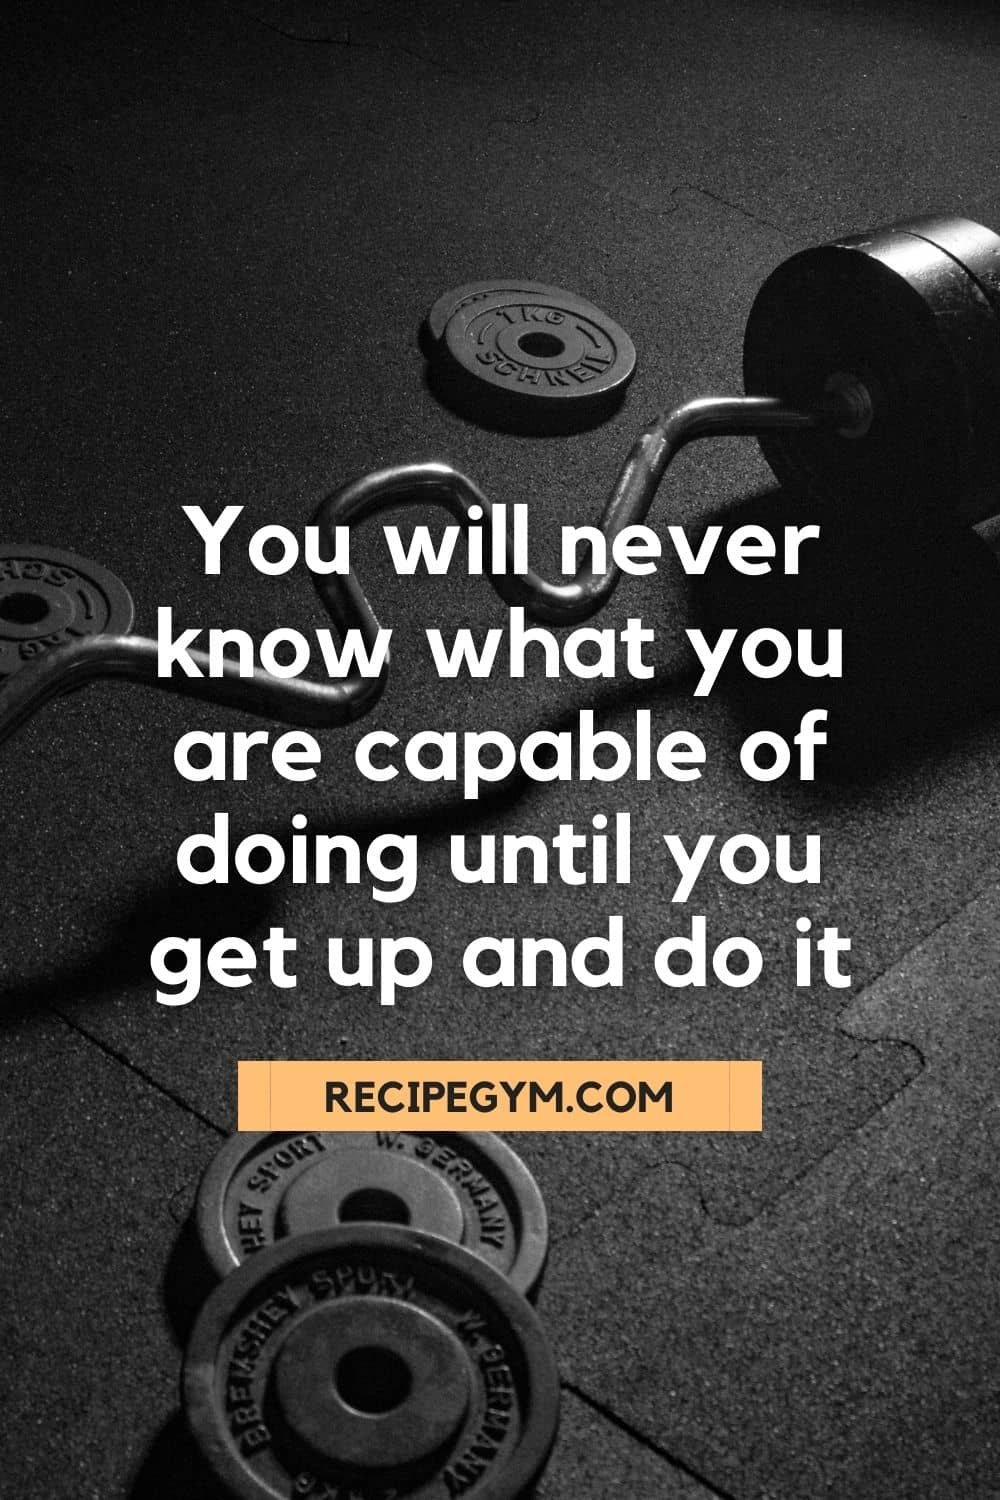 You will never know what you are capable of doing until you get up and do it